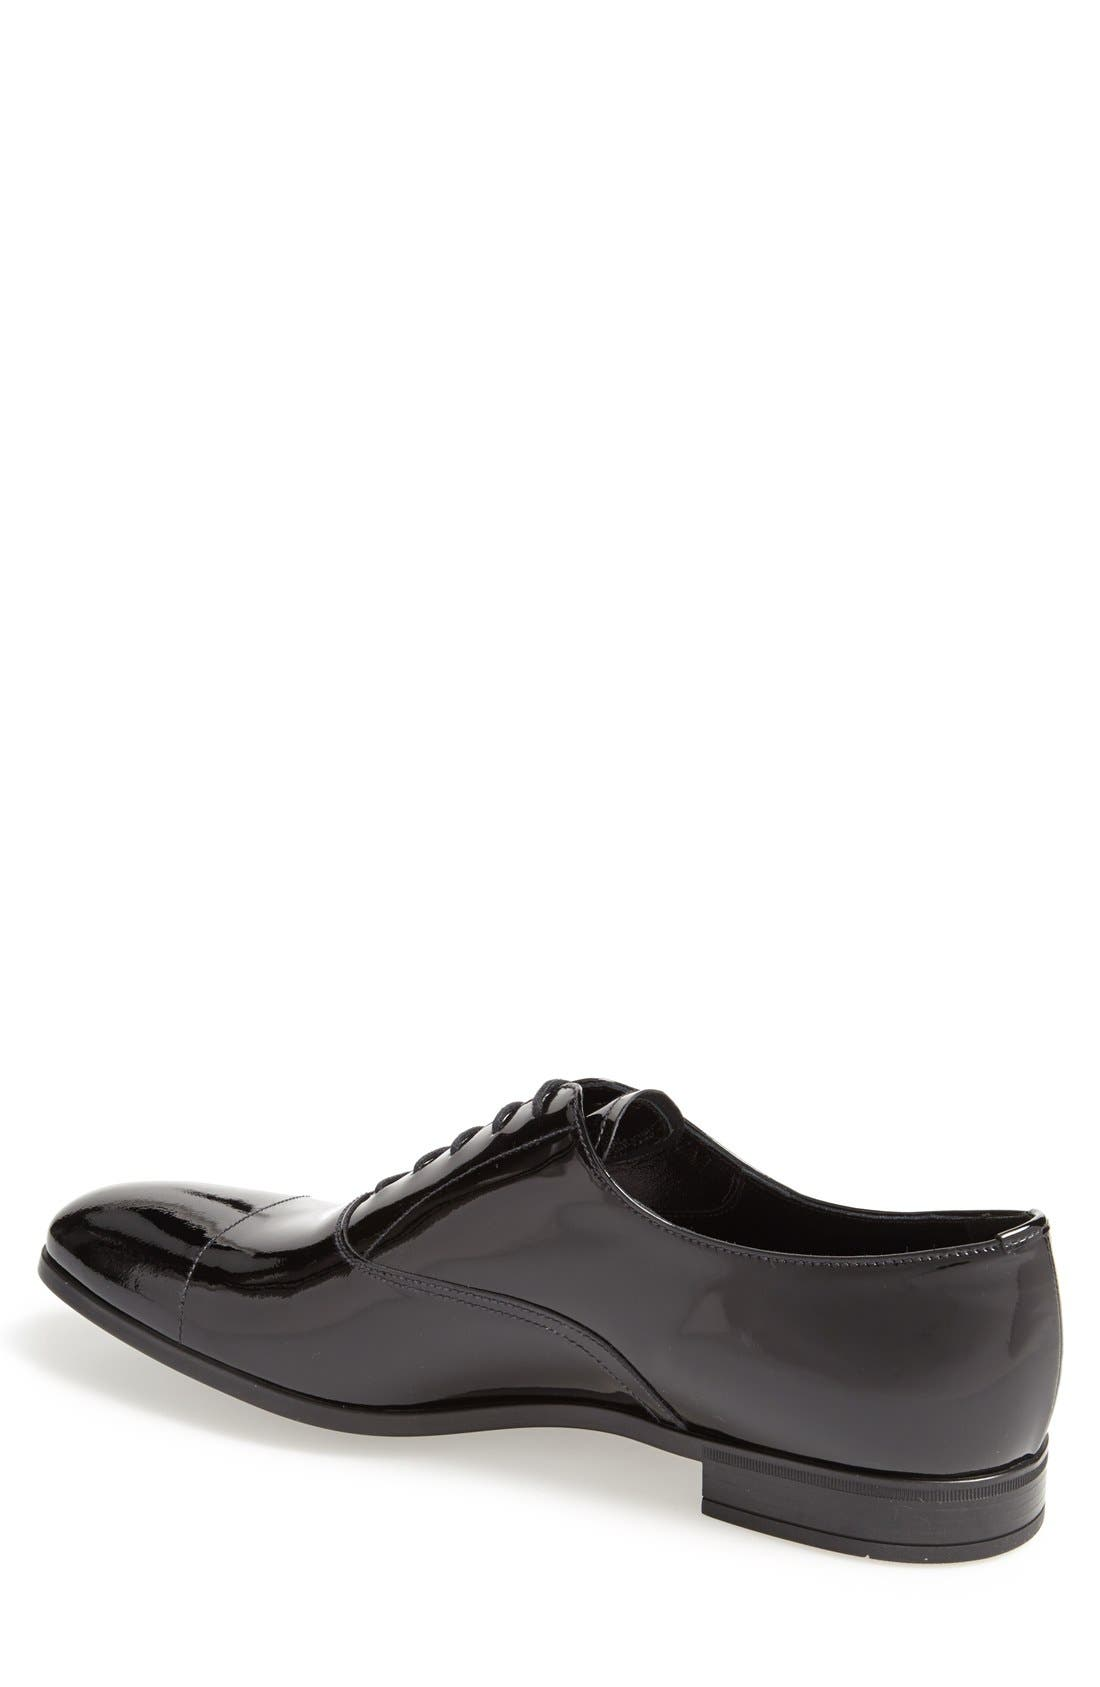 Patent Cap Toe Oxford,                             Alternate thumbnail 2, color,                             BLACK